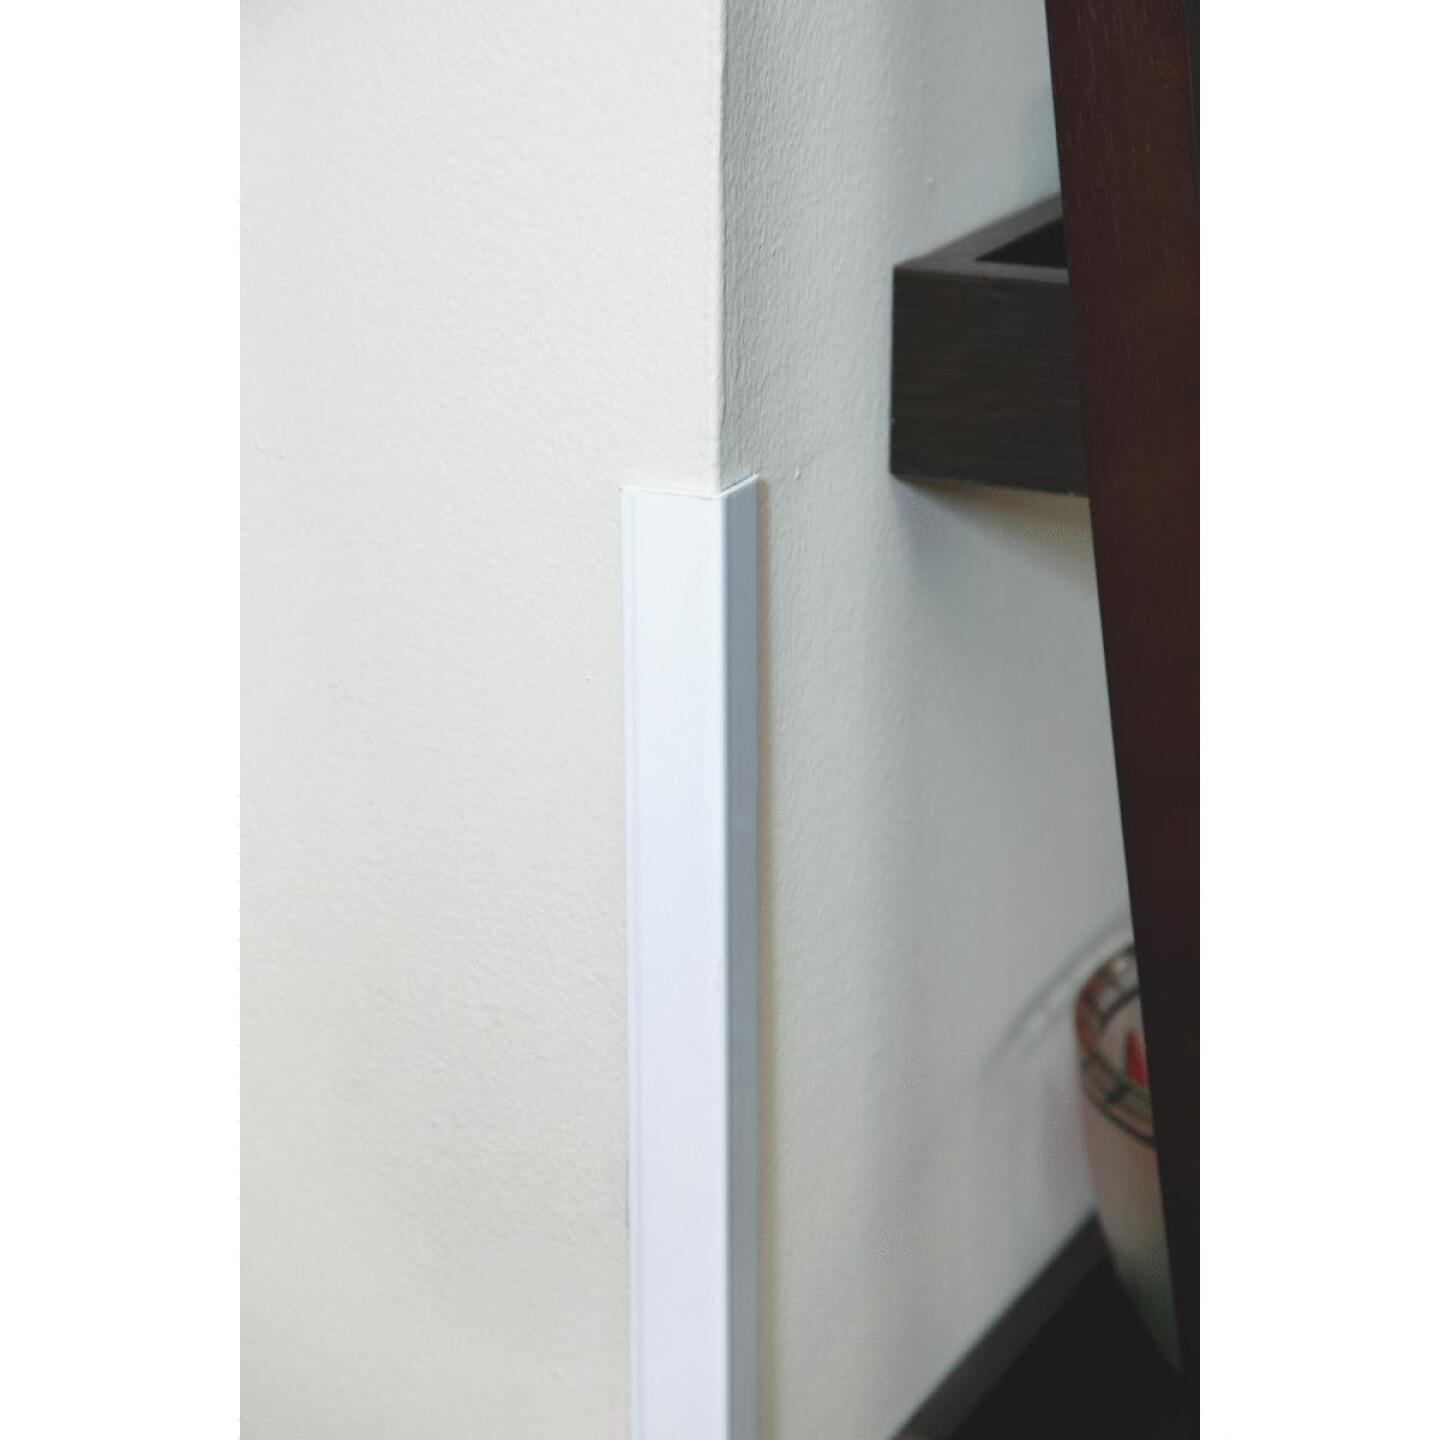 Wallprotex 1-1/8 In. x 4 Ft. White Self-Adhesive Corner Guard Image 2